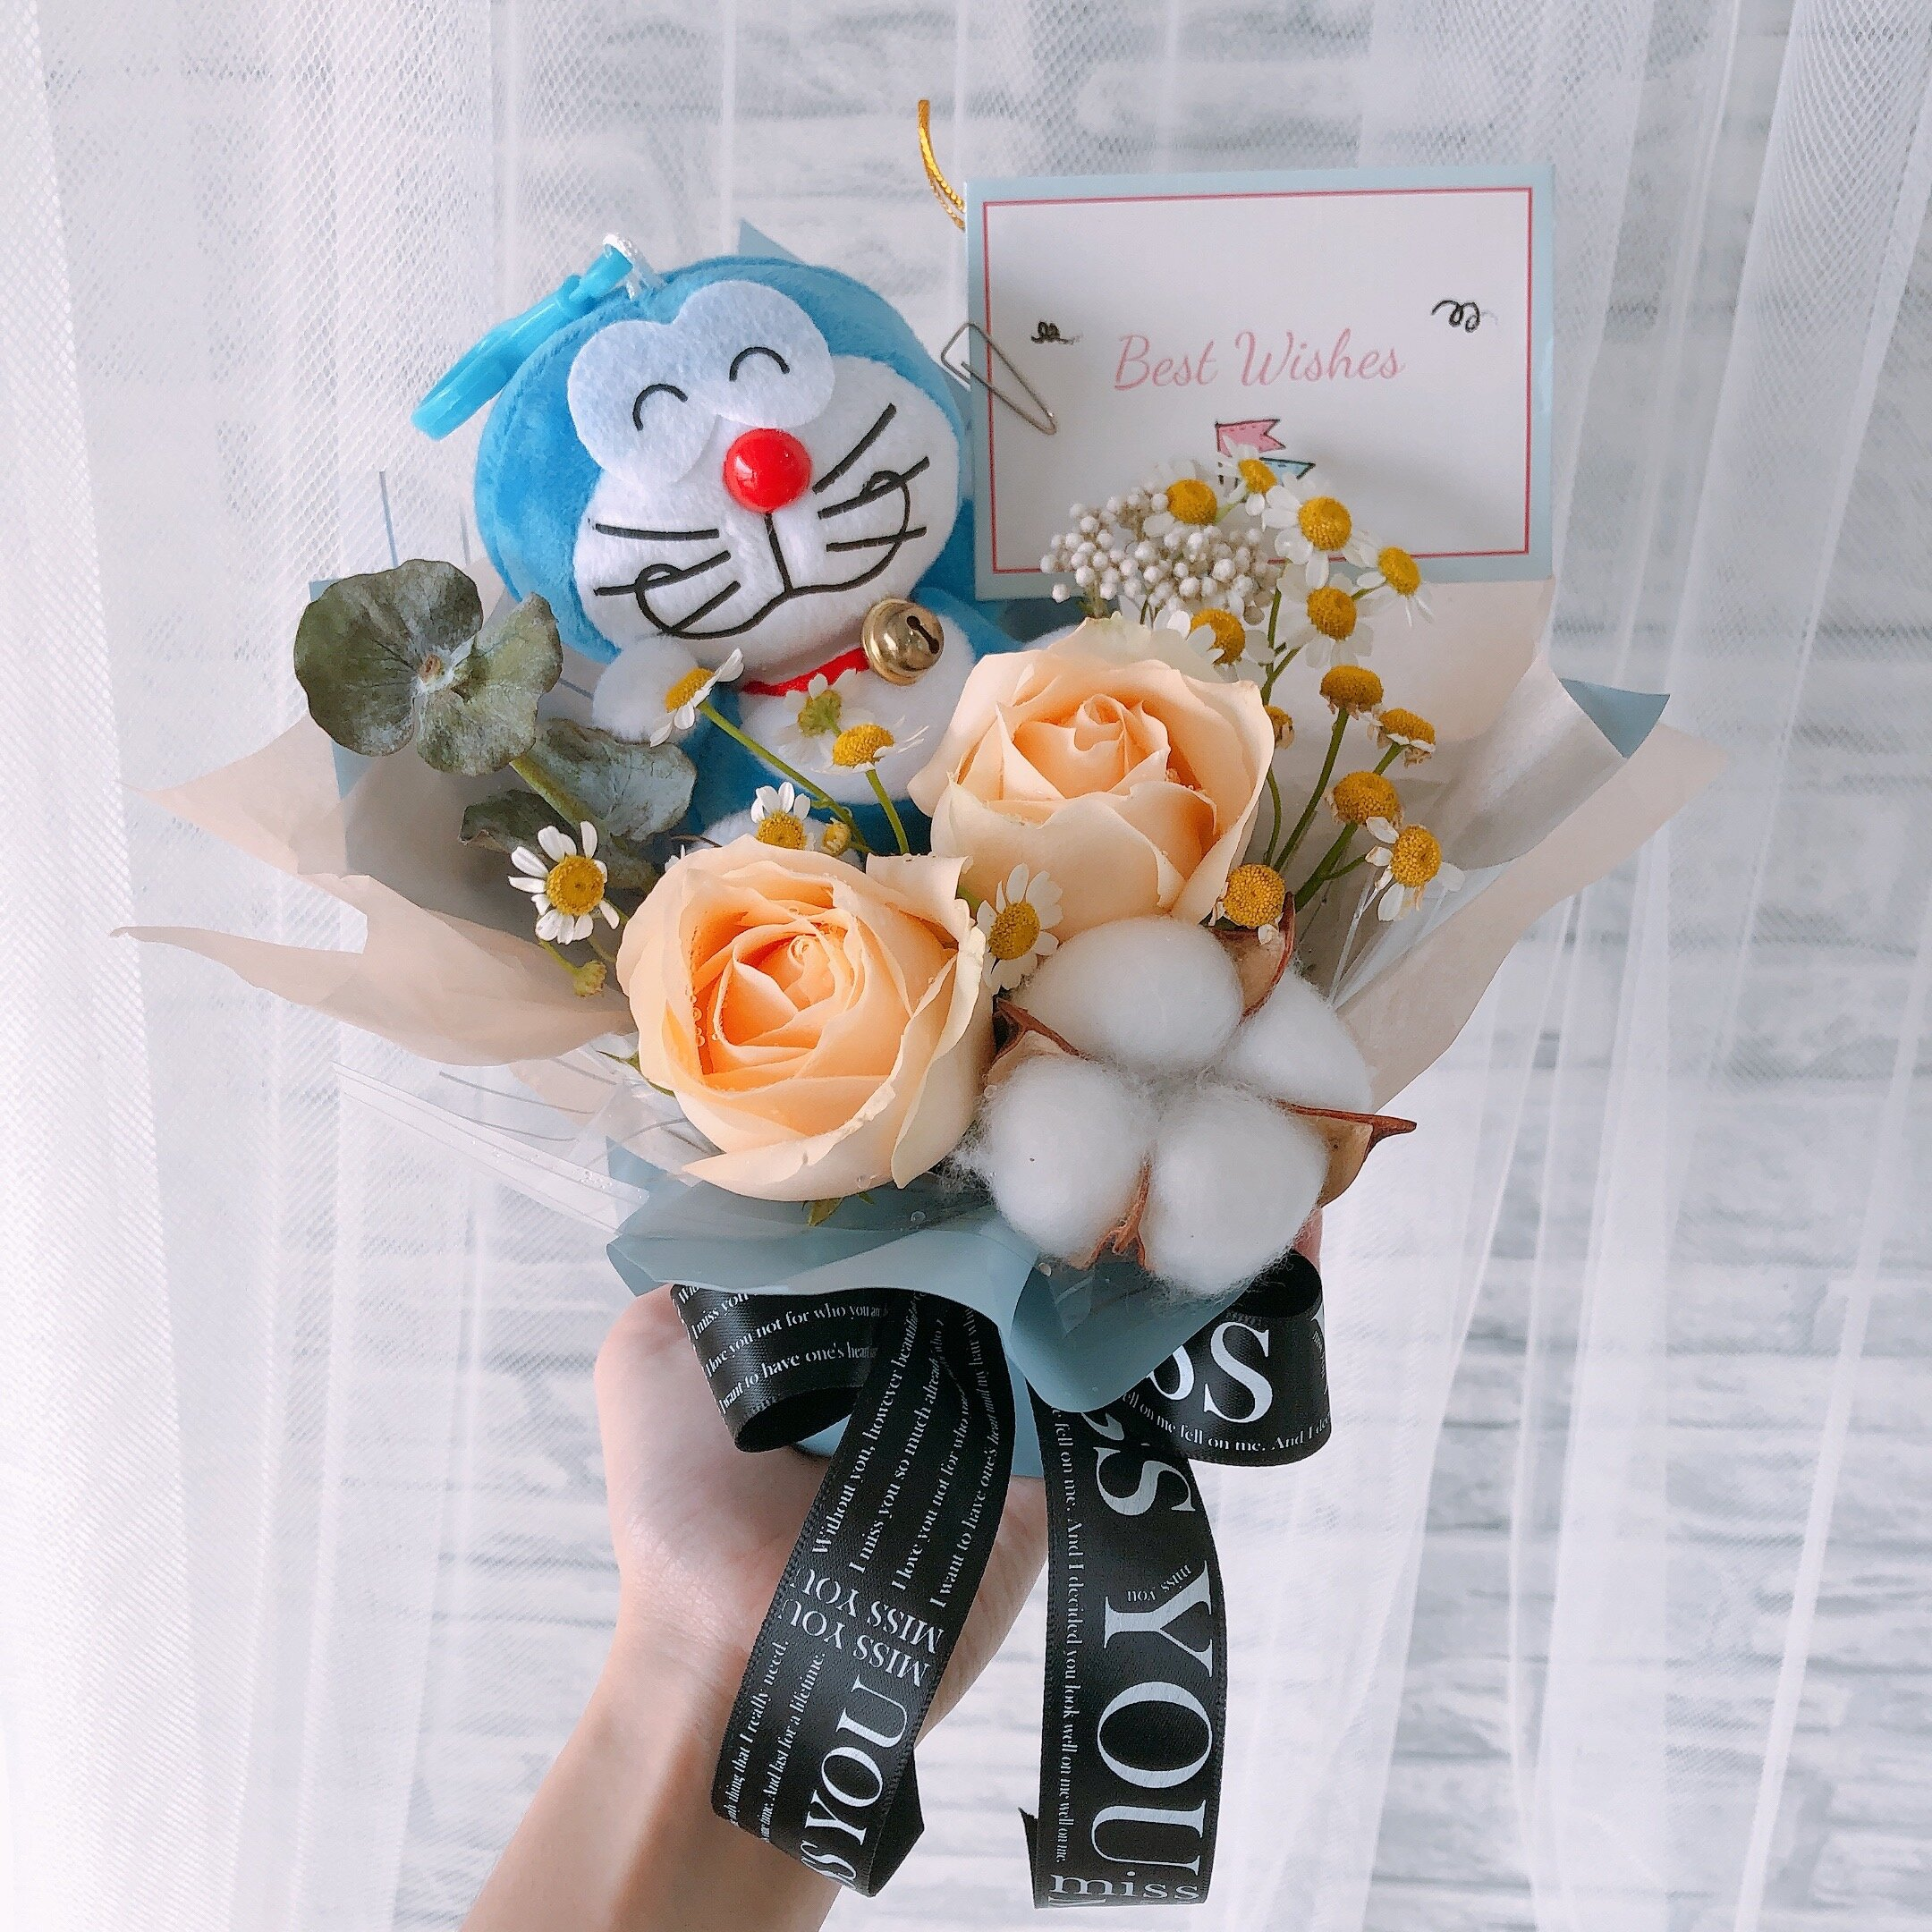 Just For You - Freeland Floral 自由花苑